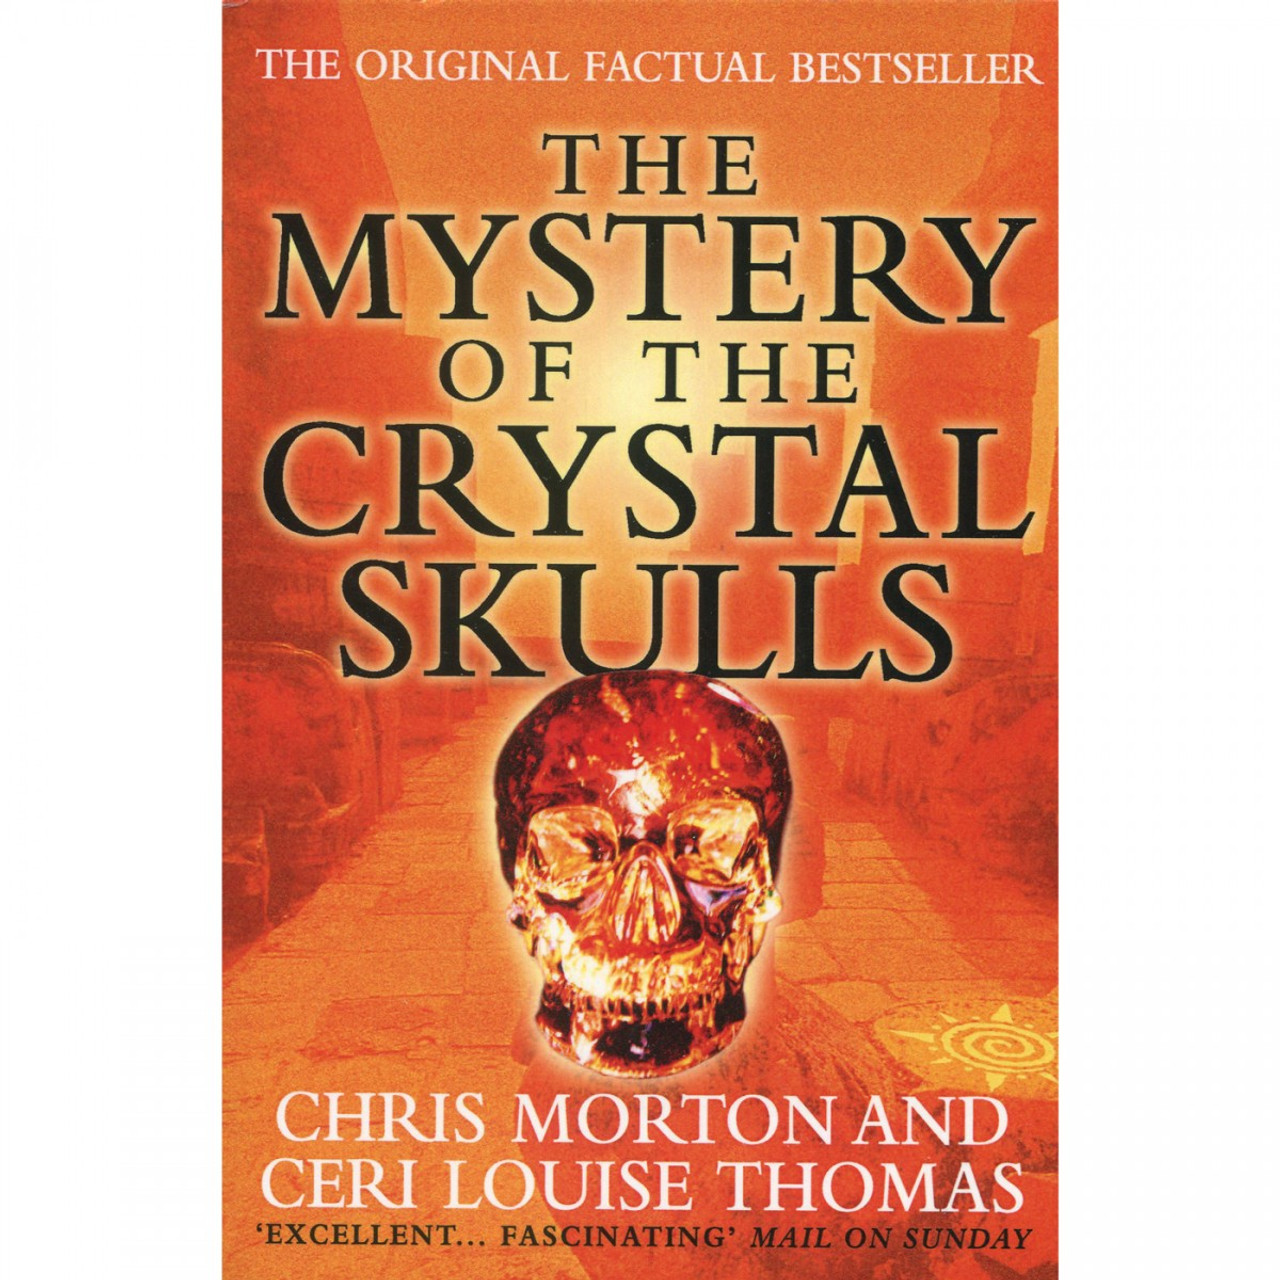 The Mystery of The Crystal Skulls by Chris Morton & Ceri Louise Thomas